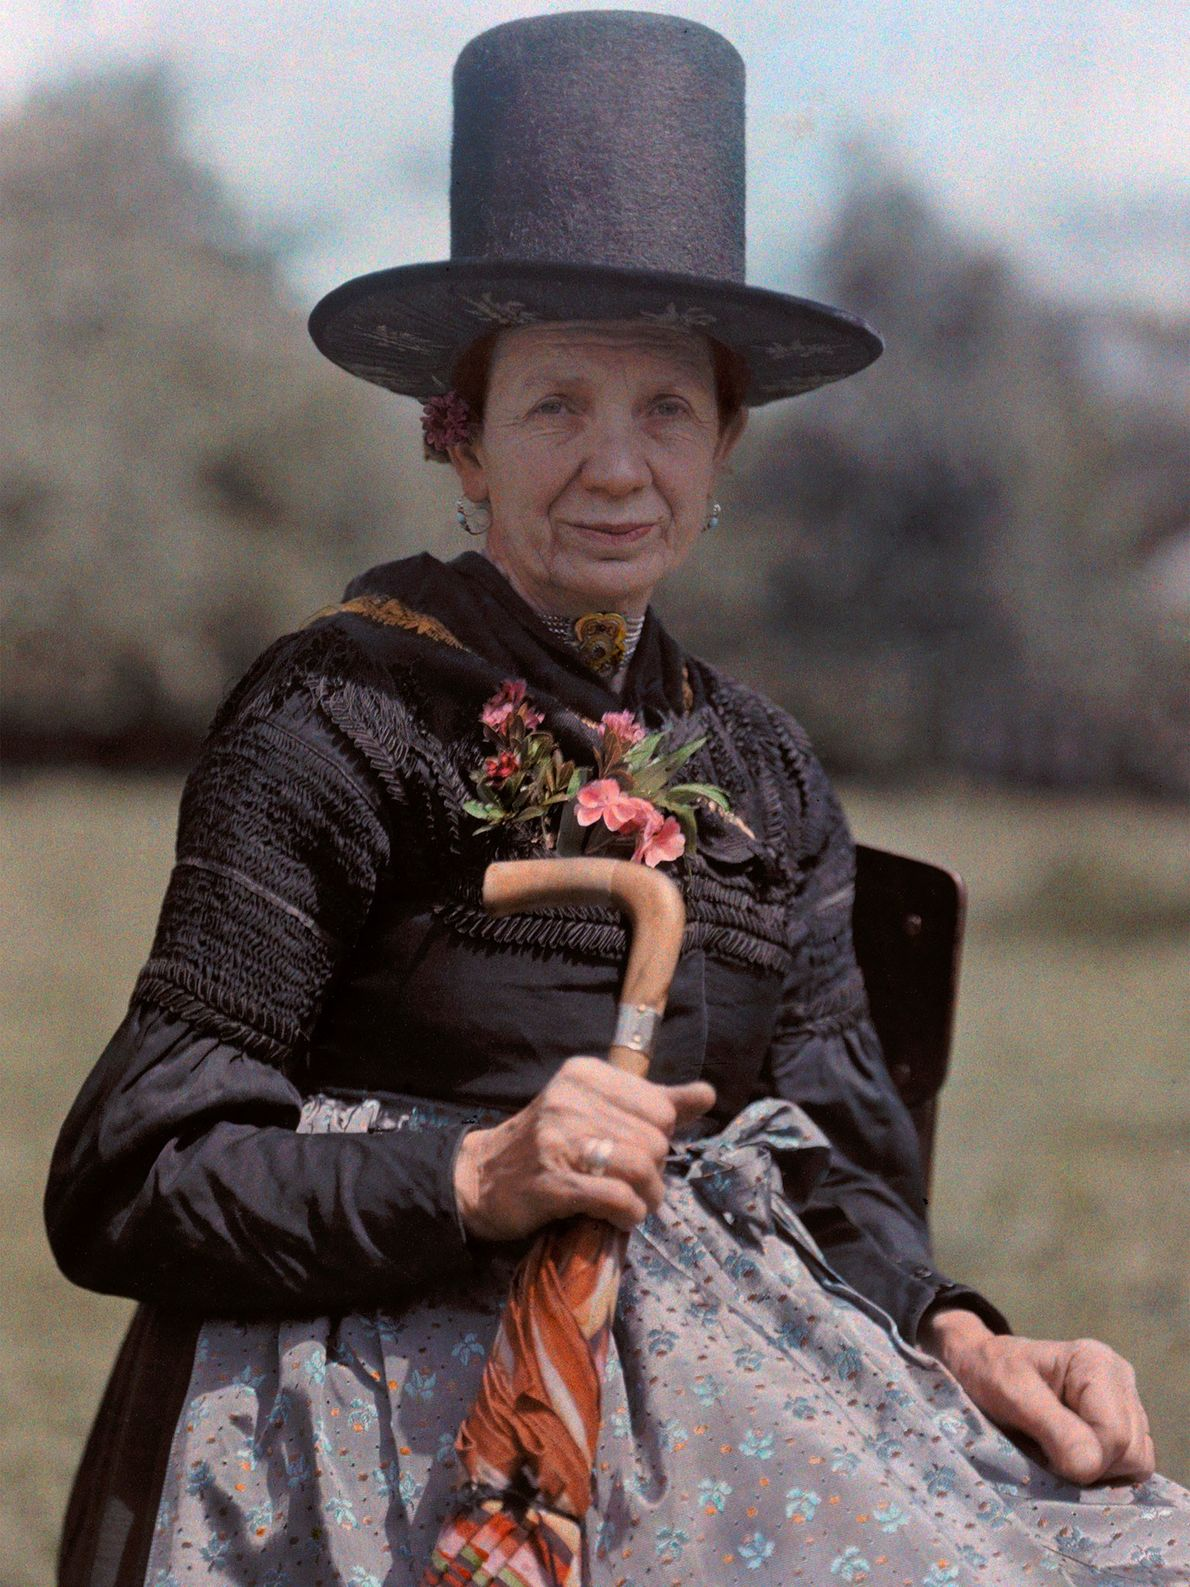 An Austrian woman from Bischofshofen poses in a stovepipe-style hat with embellished features visible below its ...